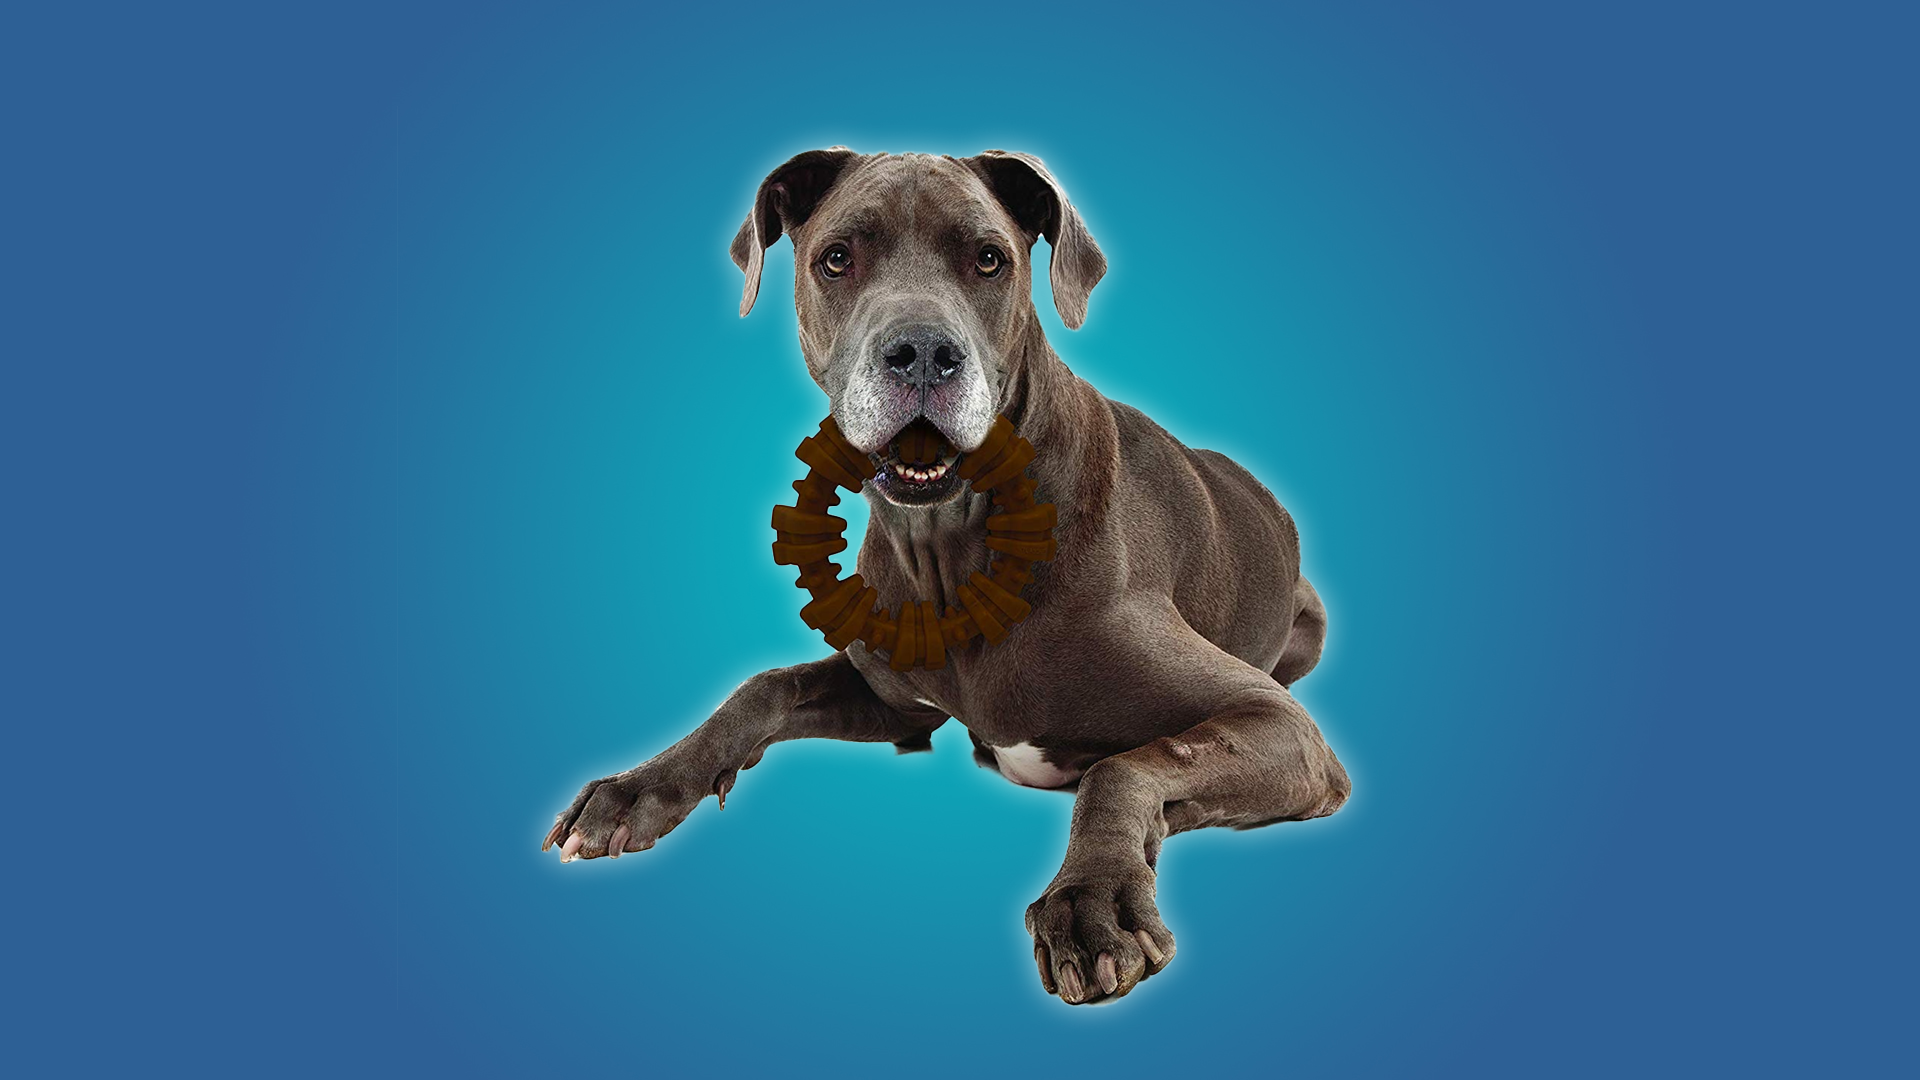 Dog chewing on a Nylabone ring